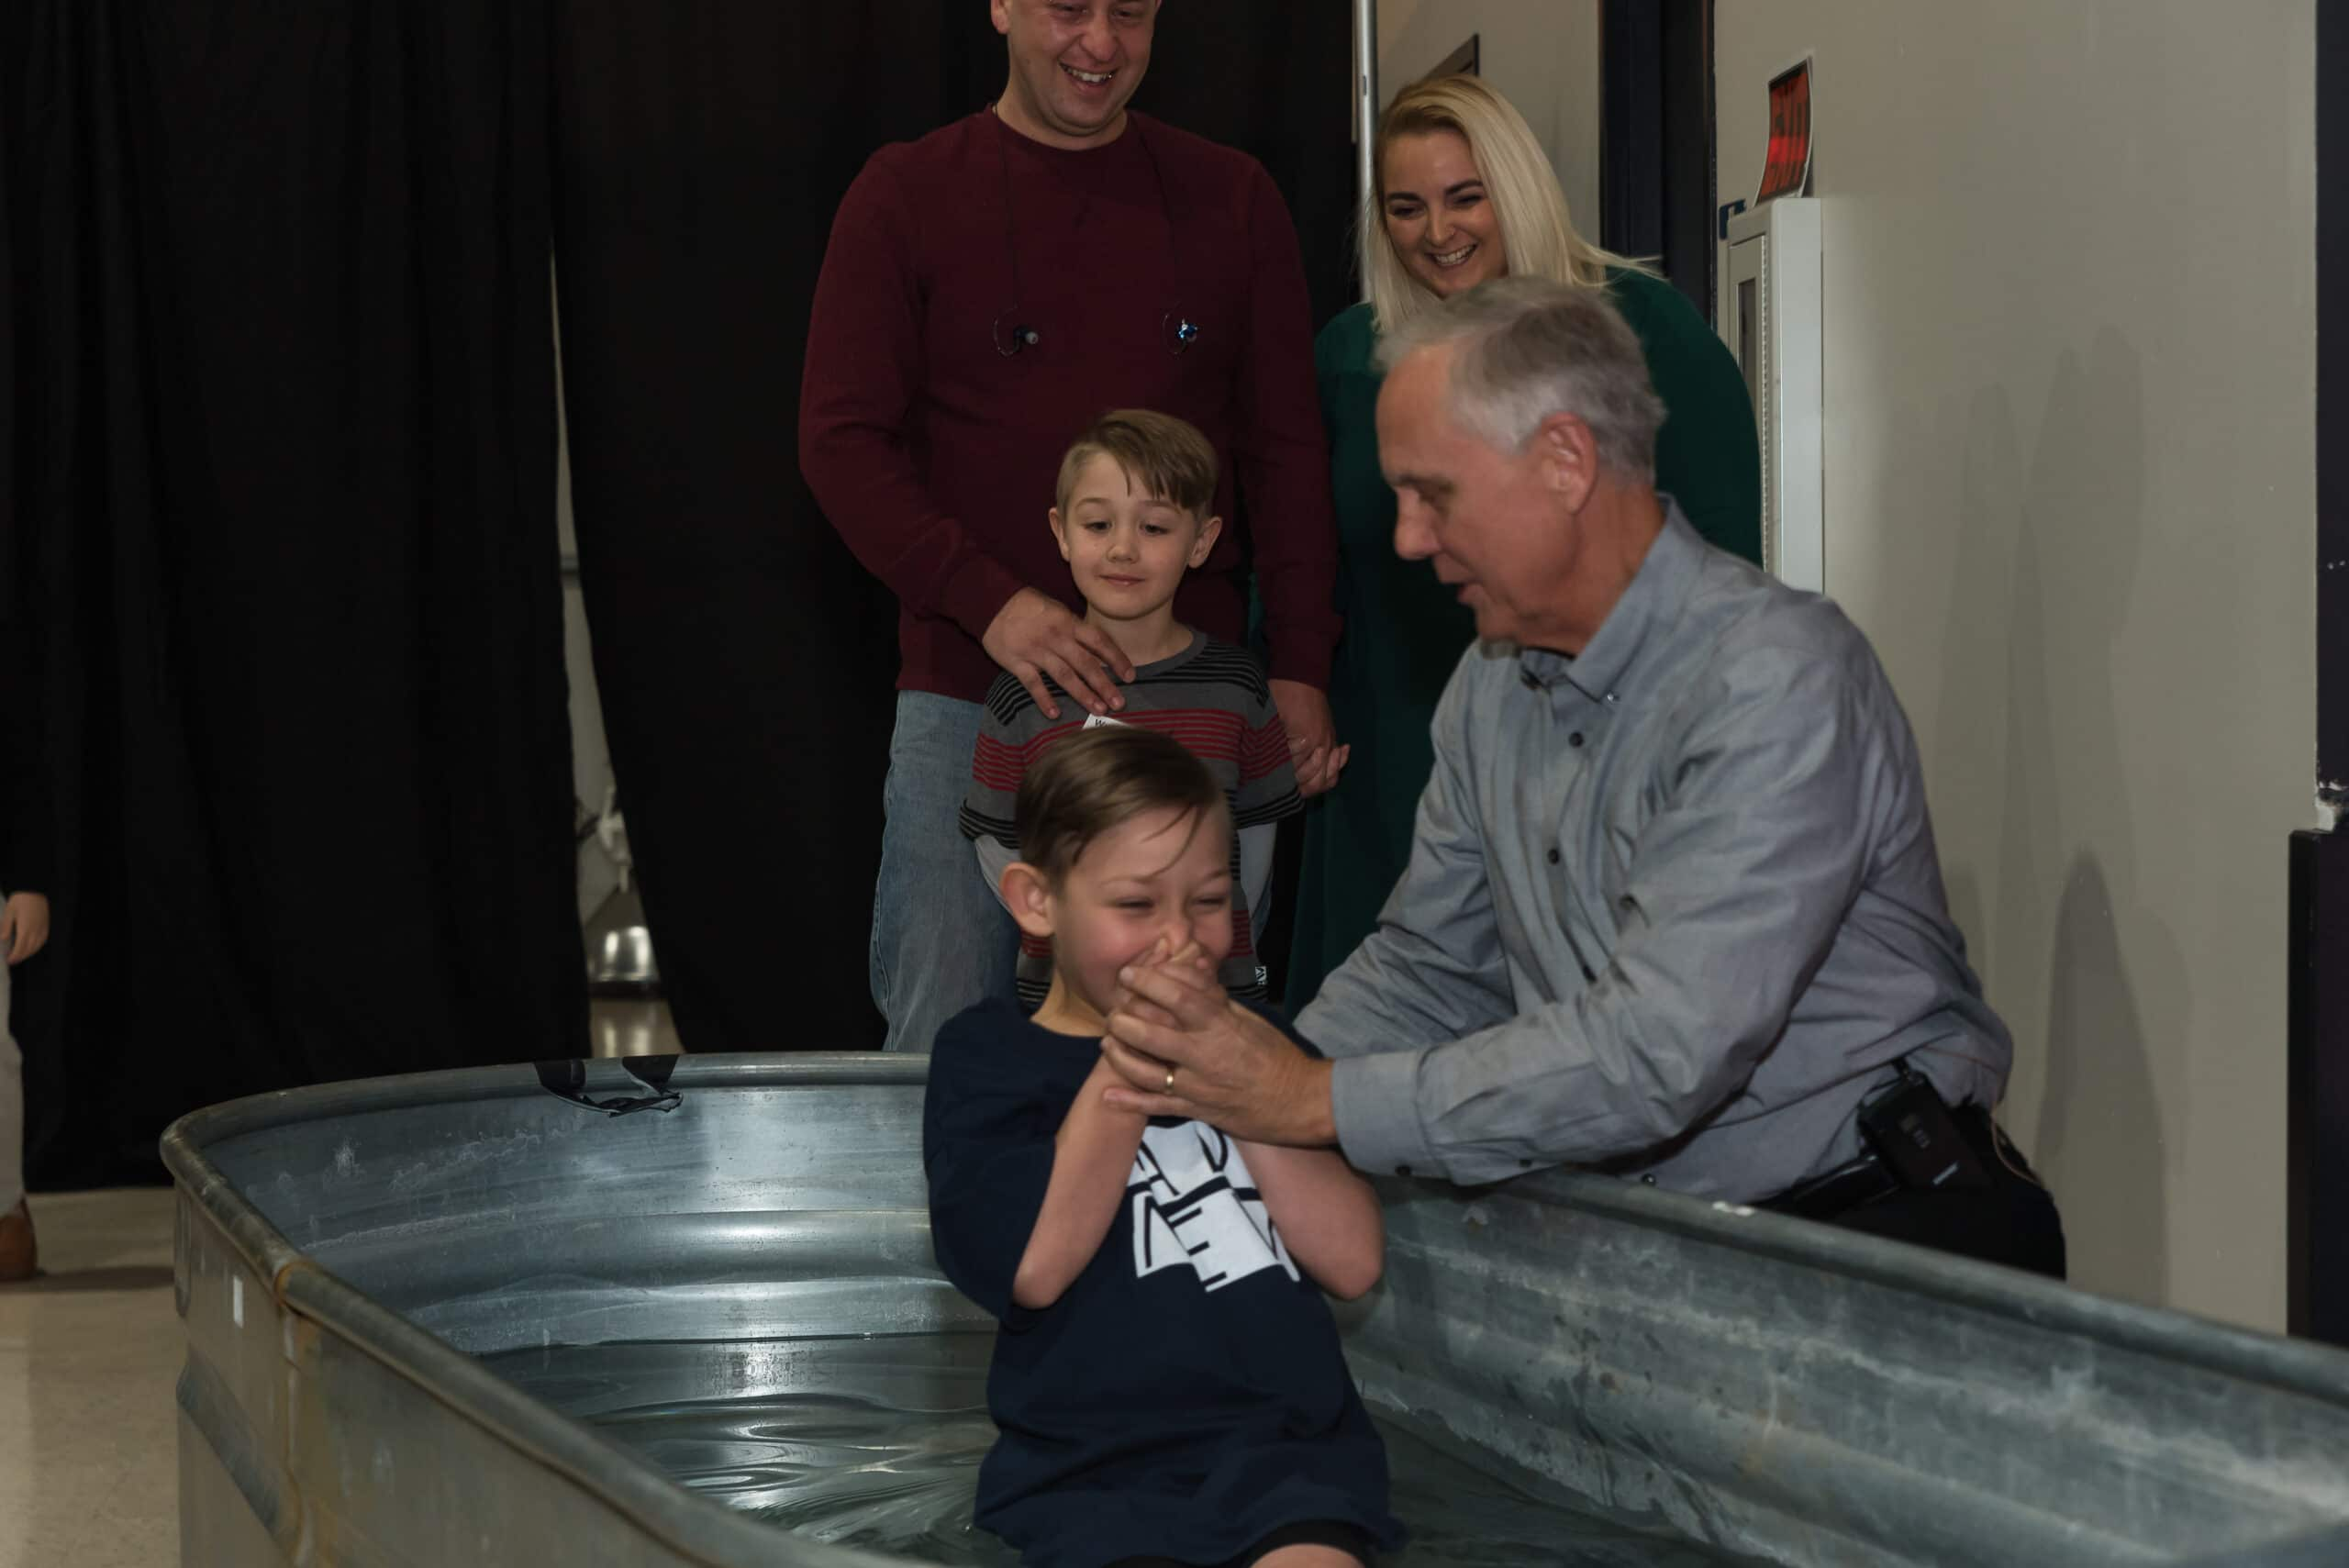 Being a homemaker allowed me to teach my son about baptism